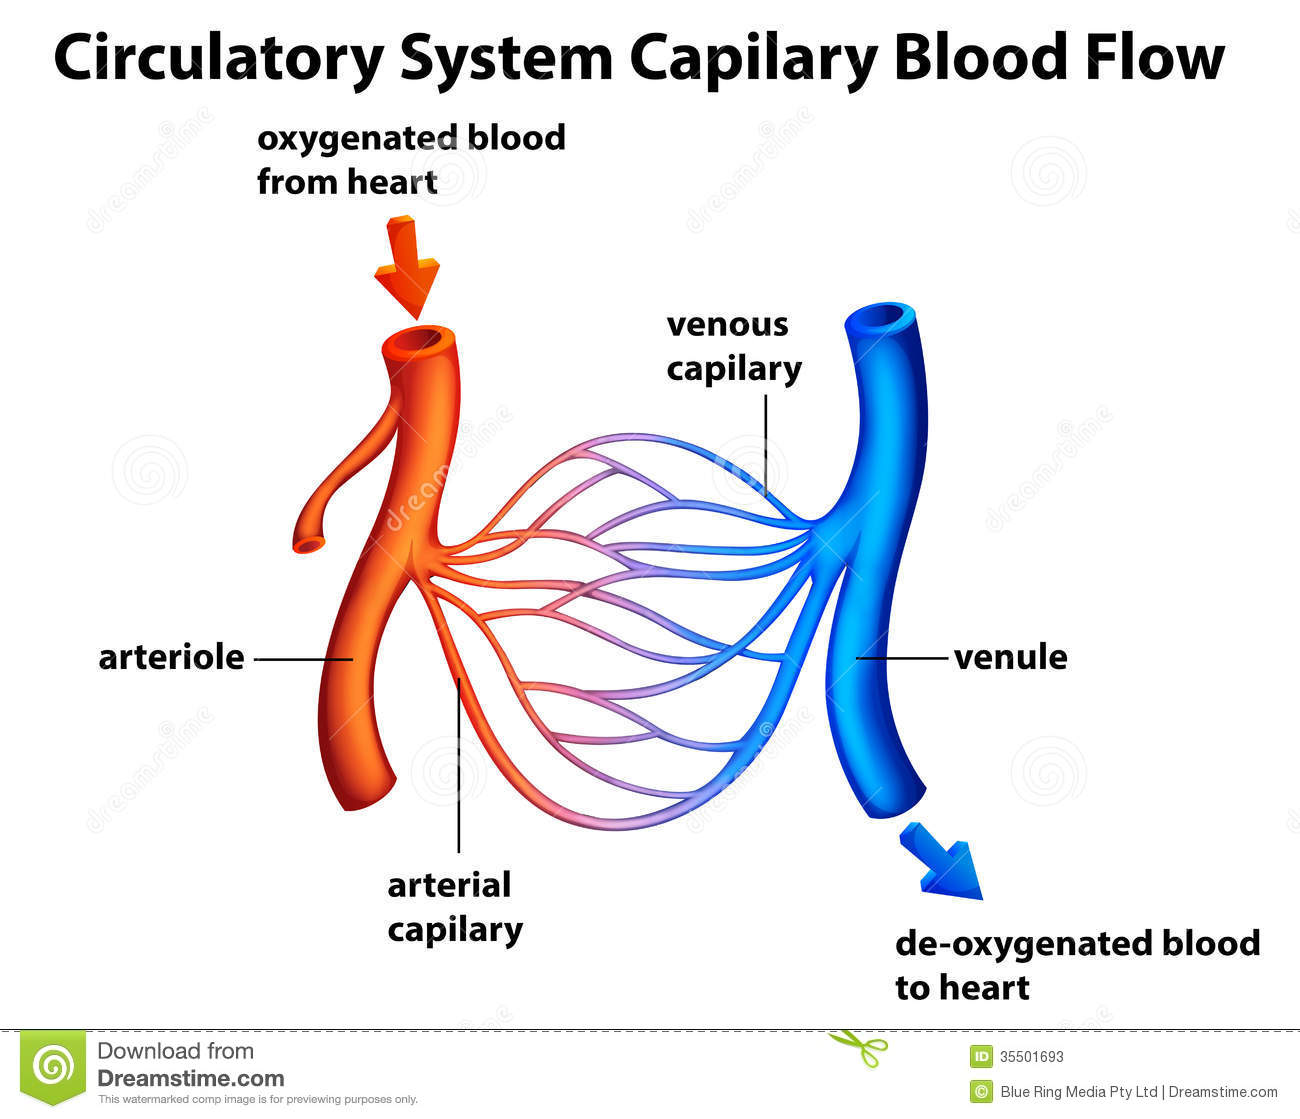 Circulatory system capilary blood flow stock vector circulatory system capilary blood flow pooptronica Choice Image